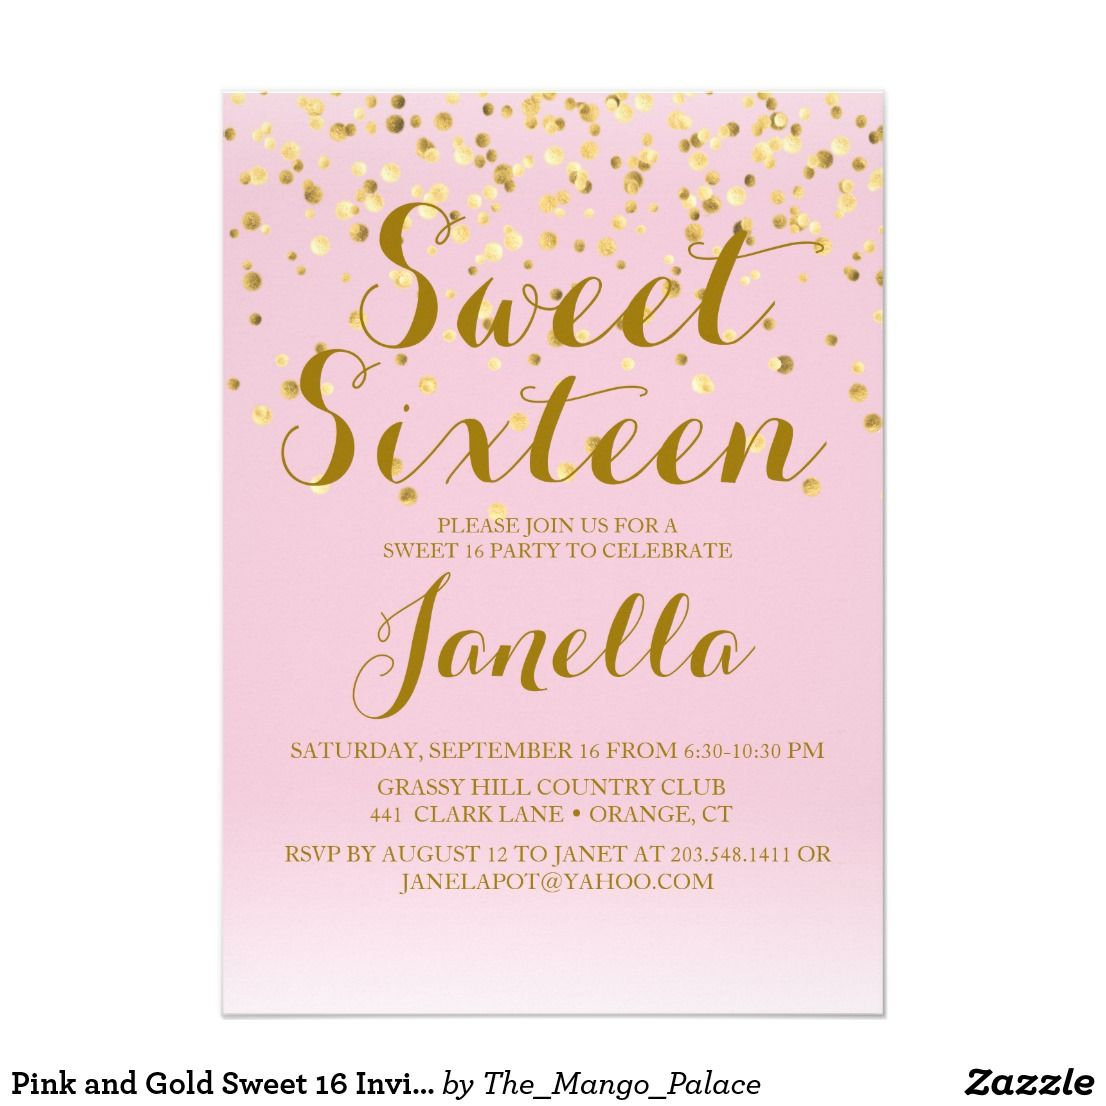 Pink and Gold Sweet 16 Invitation | Sweet 16 invitations, Sweet 16 ...